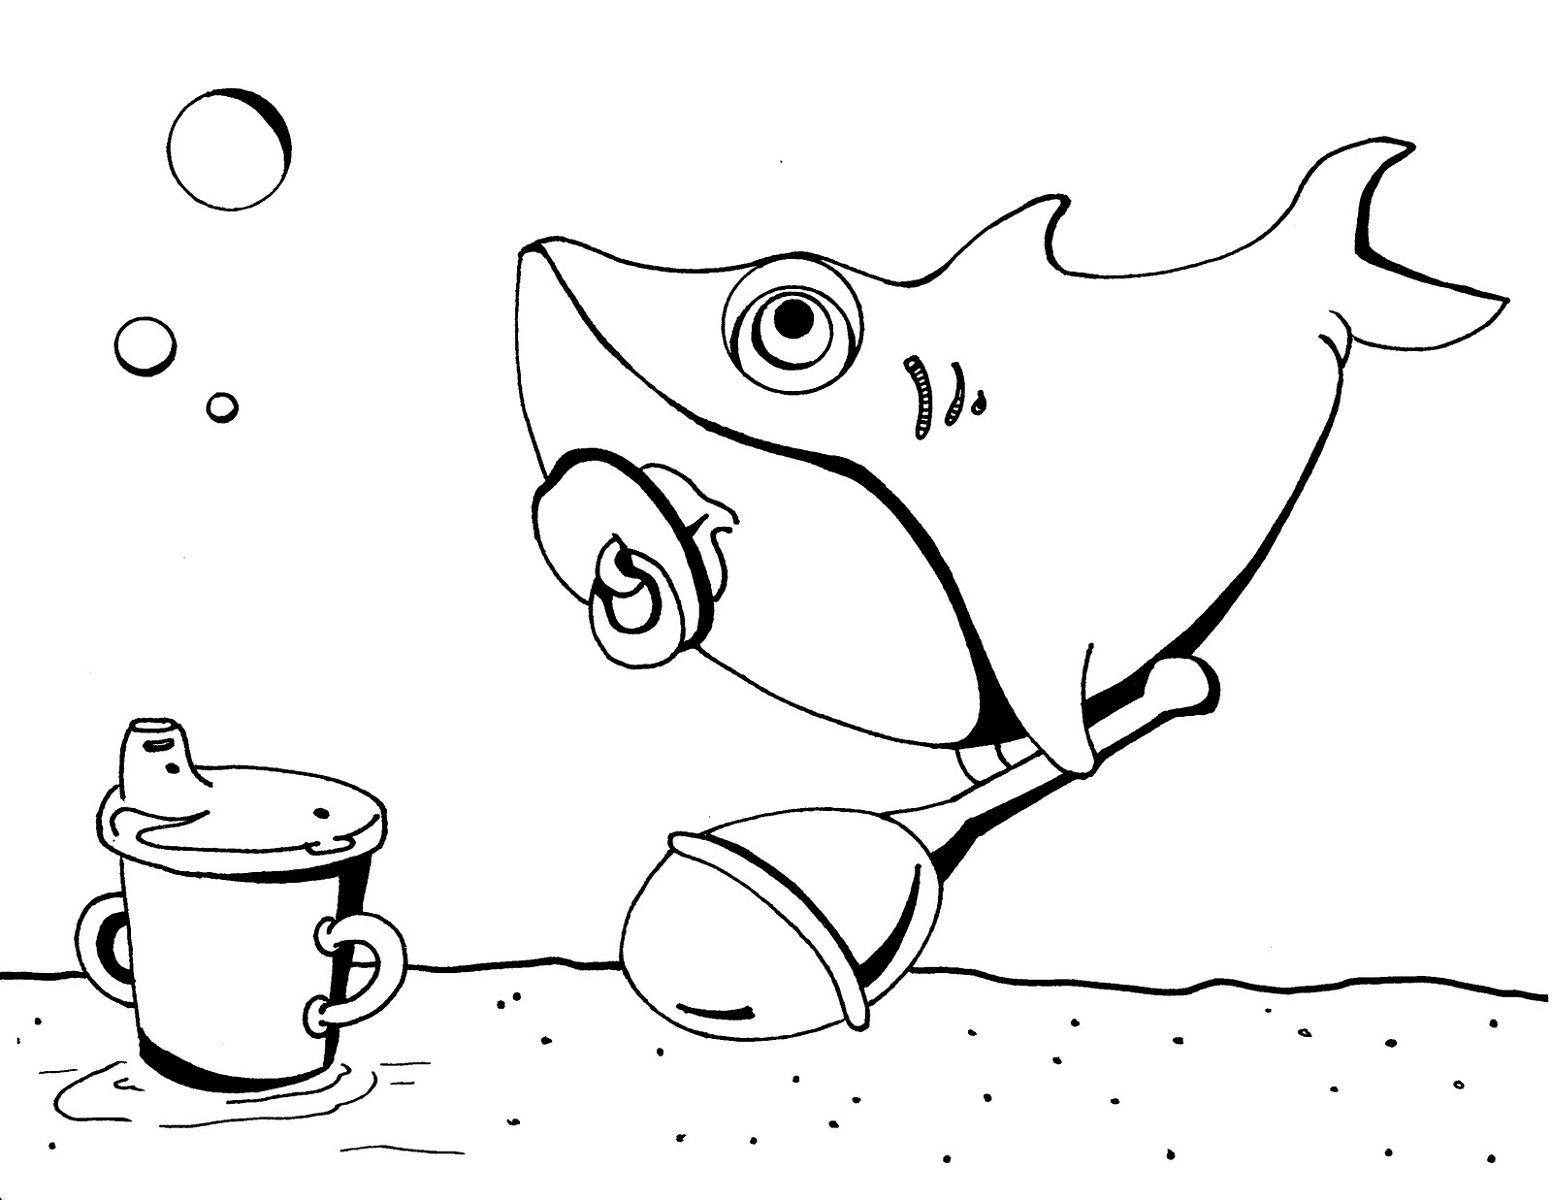 shark colouring picture hungry shark world coloring pages at getdrawings free picture shark colouring